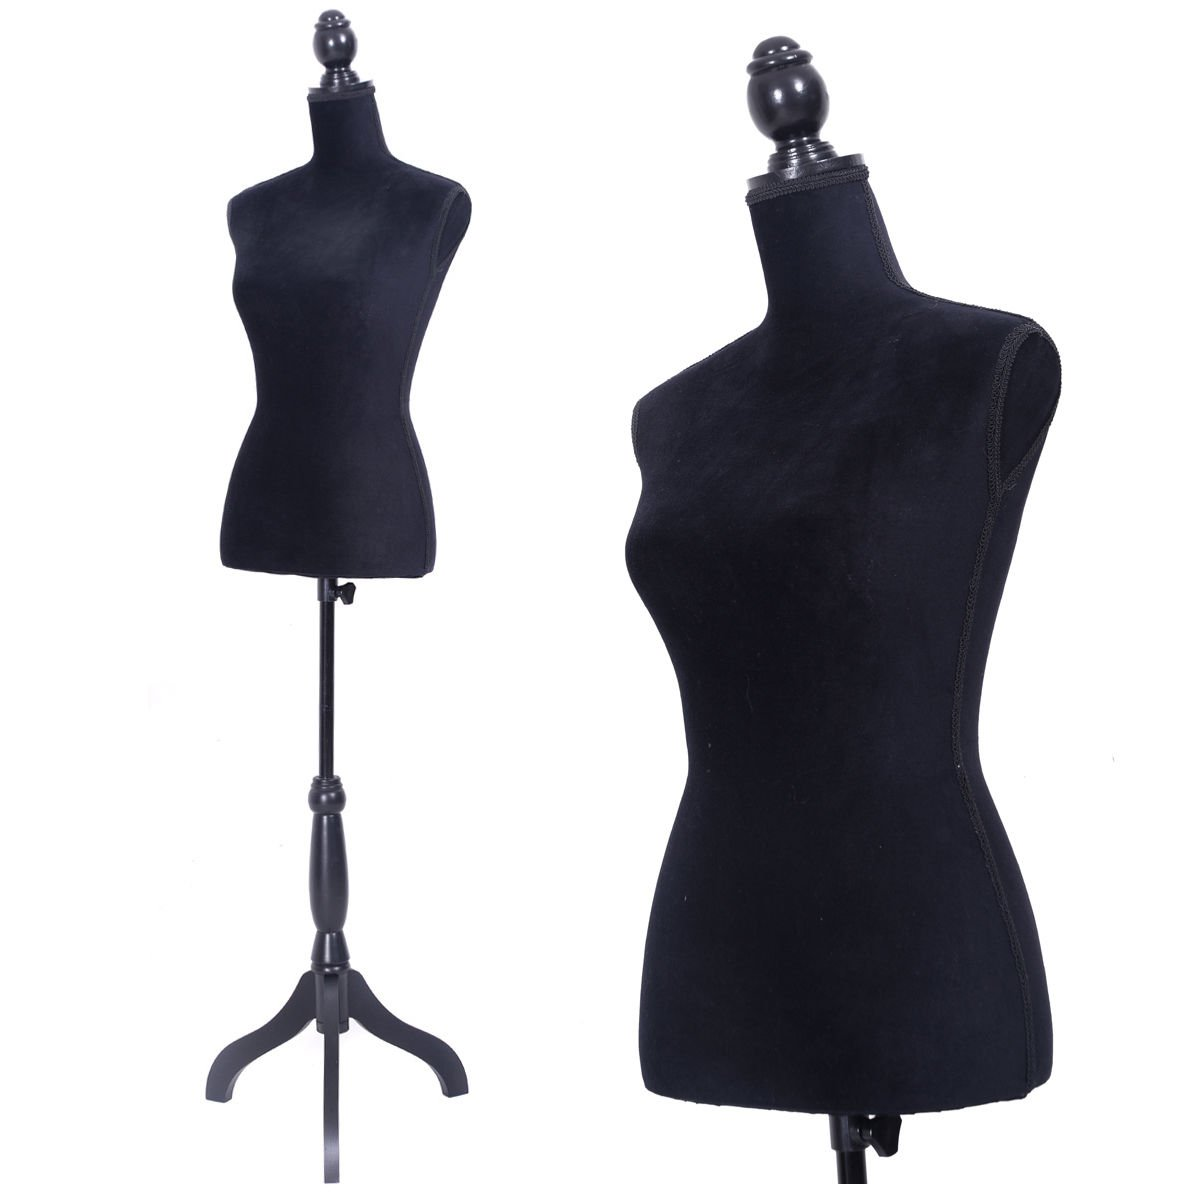 JAXPETY Female Mannequin Torso Clothing Display W/ Black Tripod Stand New Black